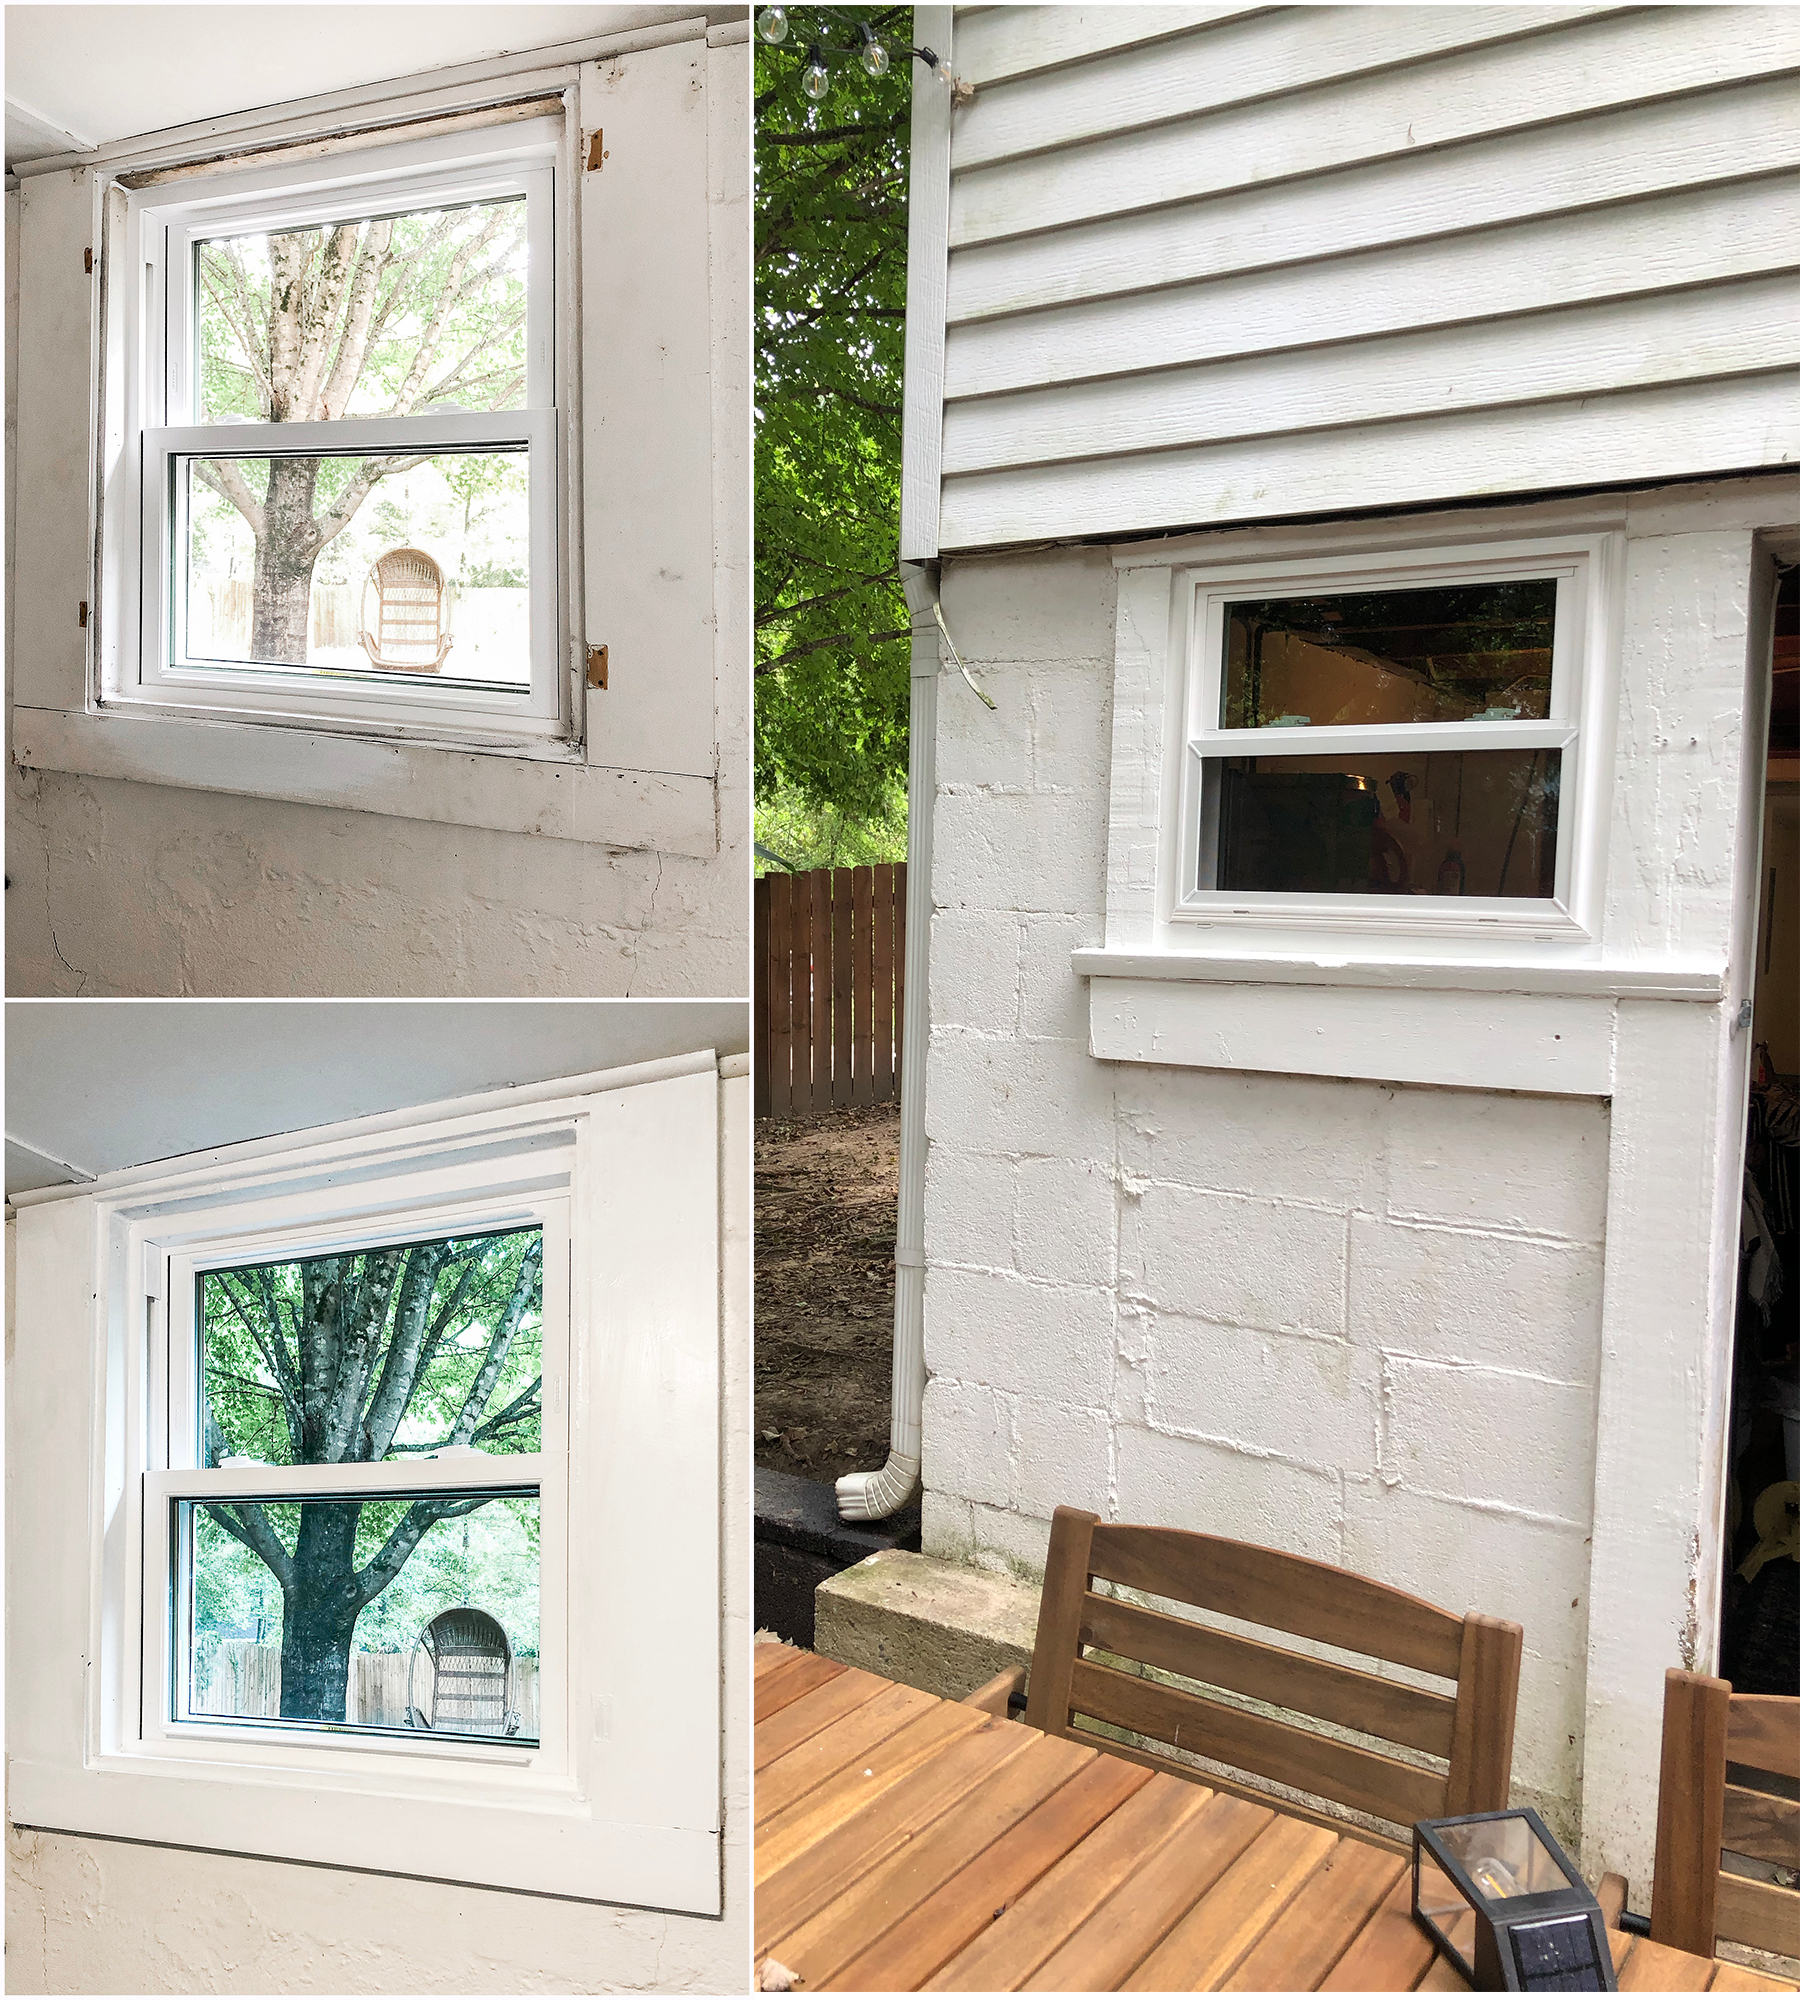 Left: before and after of the window trim being painted, right: how the other windows look on the outside.